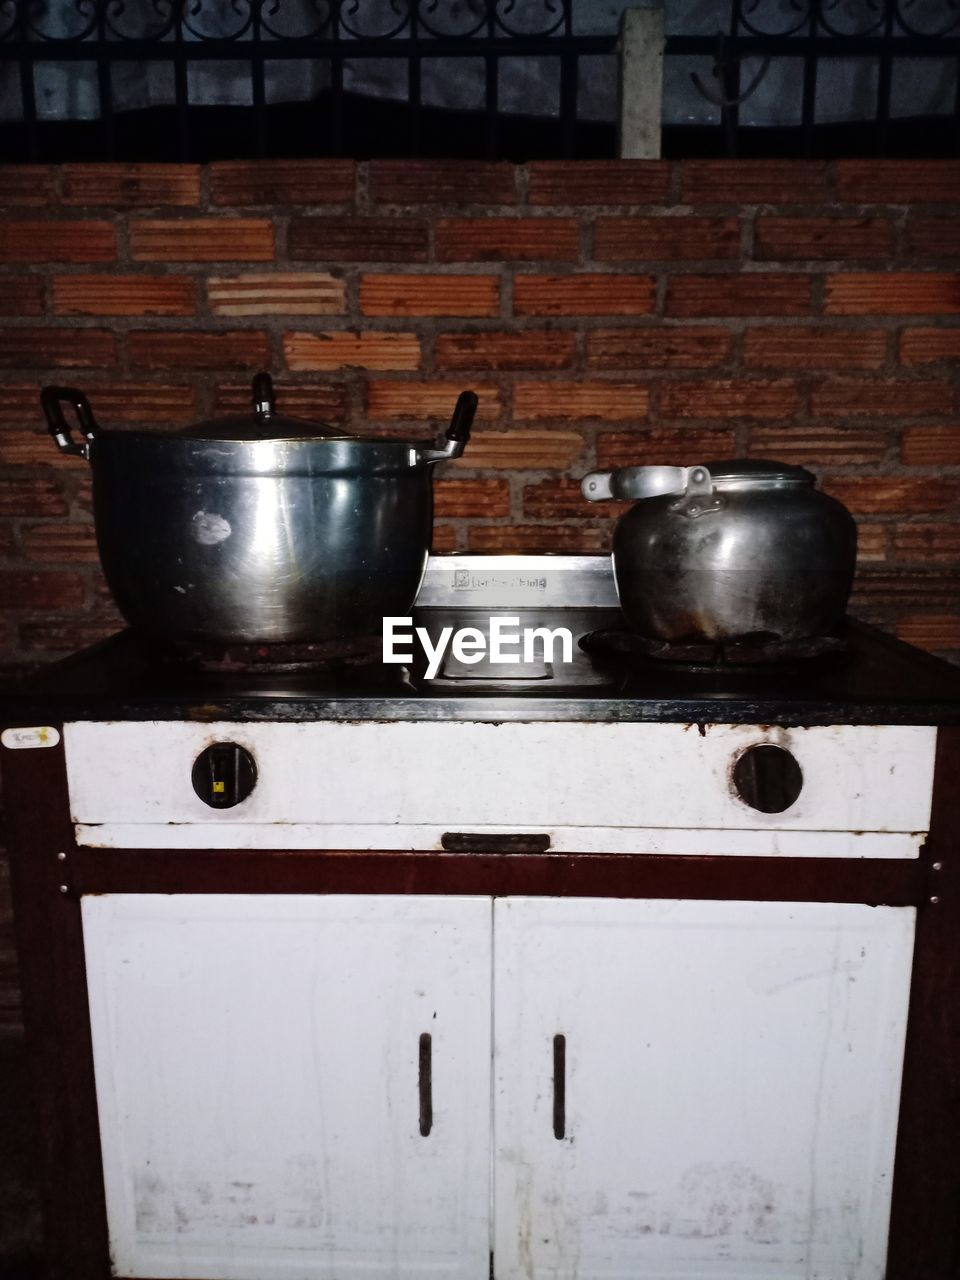 household equipment, kitchen, domestic kitchen, kitchen utensil, domestic room, home, appliance, stove, indoors, no people, metal, still life, wall - building feature, container, wood - material, cooking utensil, brick wall, cooking pan, burner - stove top, pan, steel, saucepan